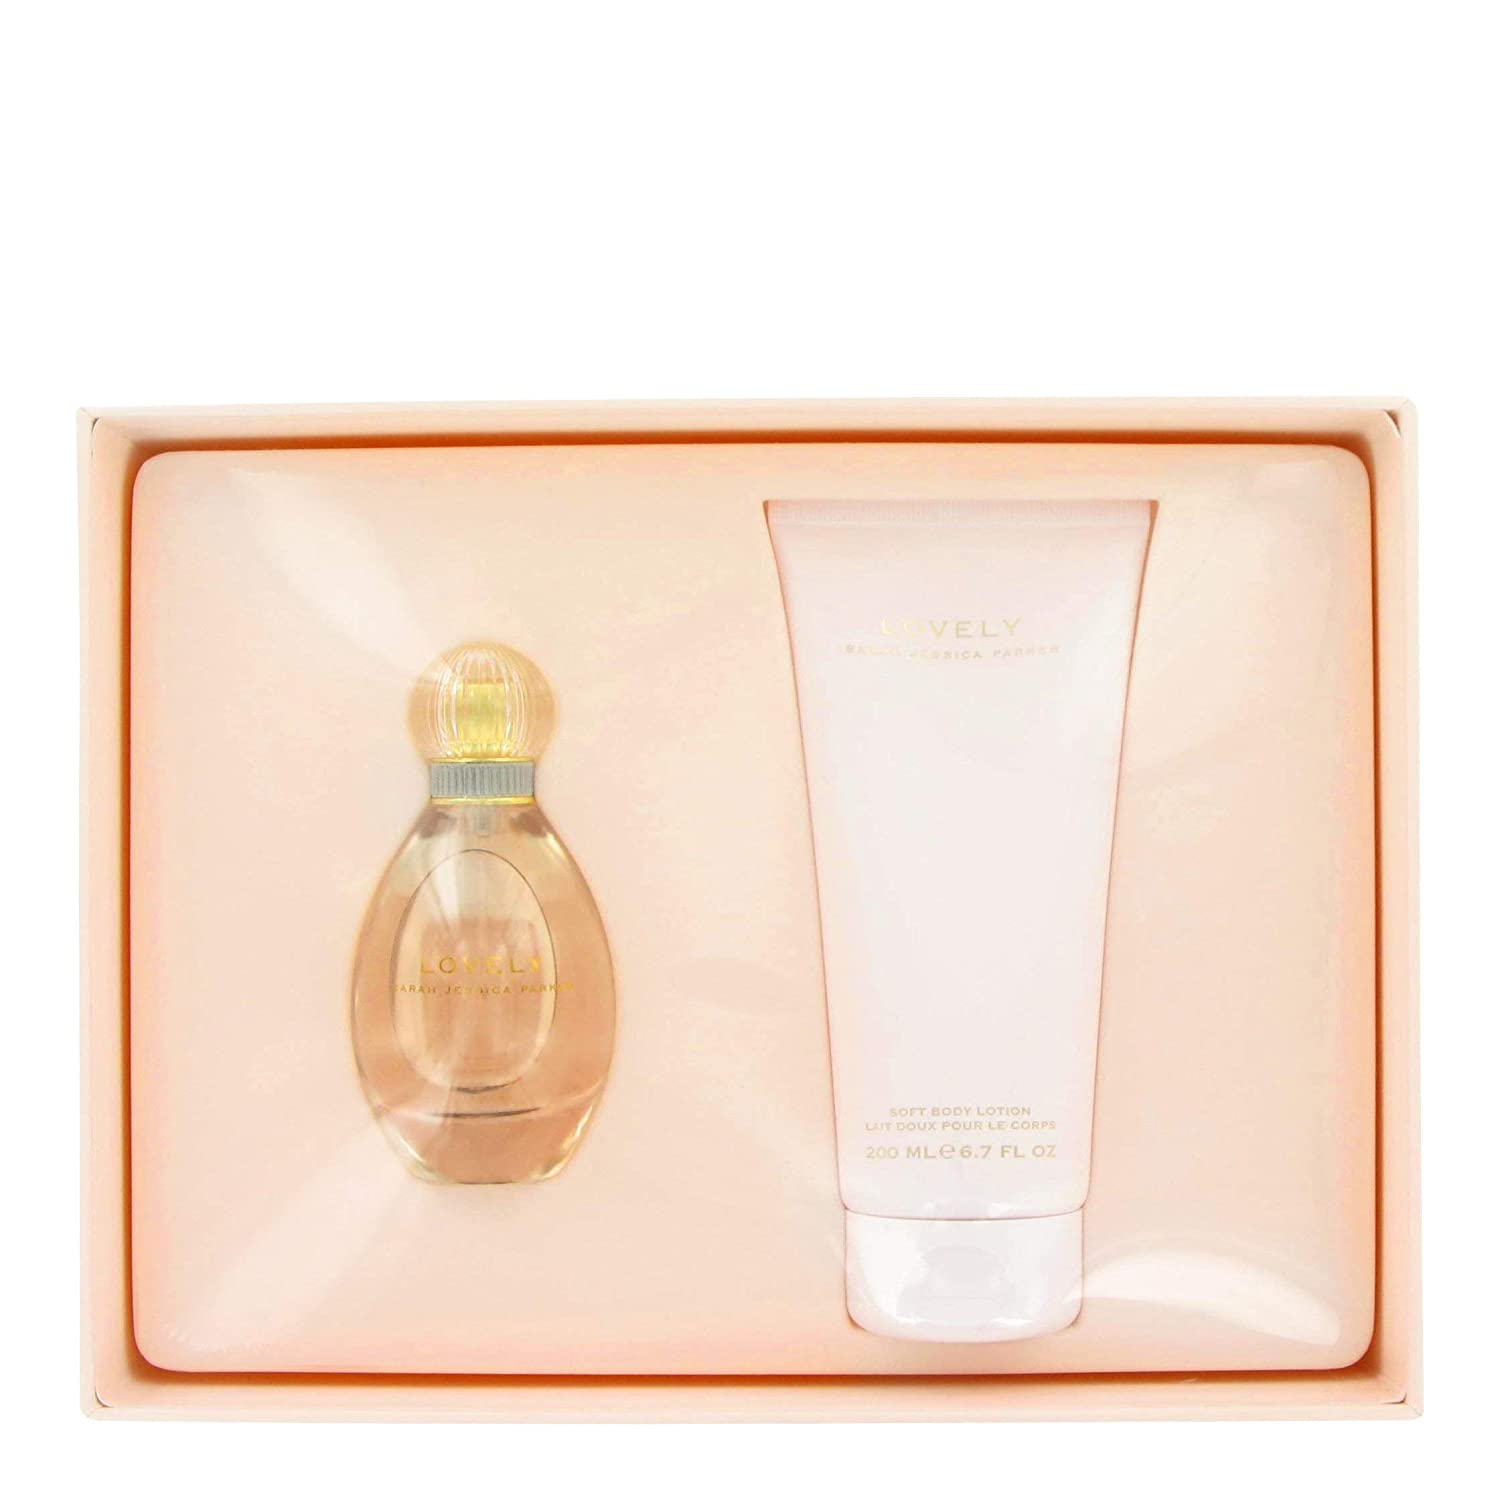 Lovely By Sarah Jessica Parker Gift Set 1.7 Oz Eau De Parfum Spray + 6.7 Oz Body Lotion (Ea)